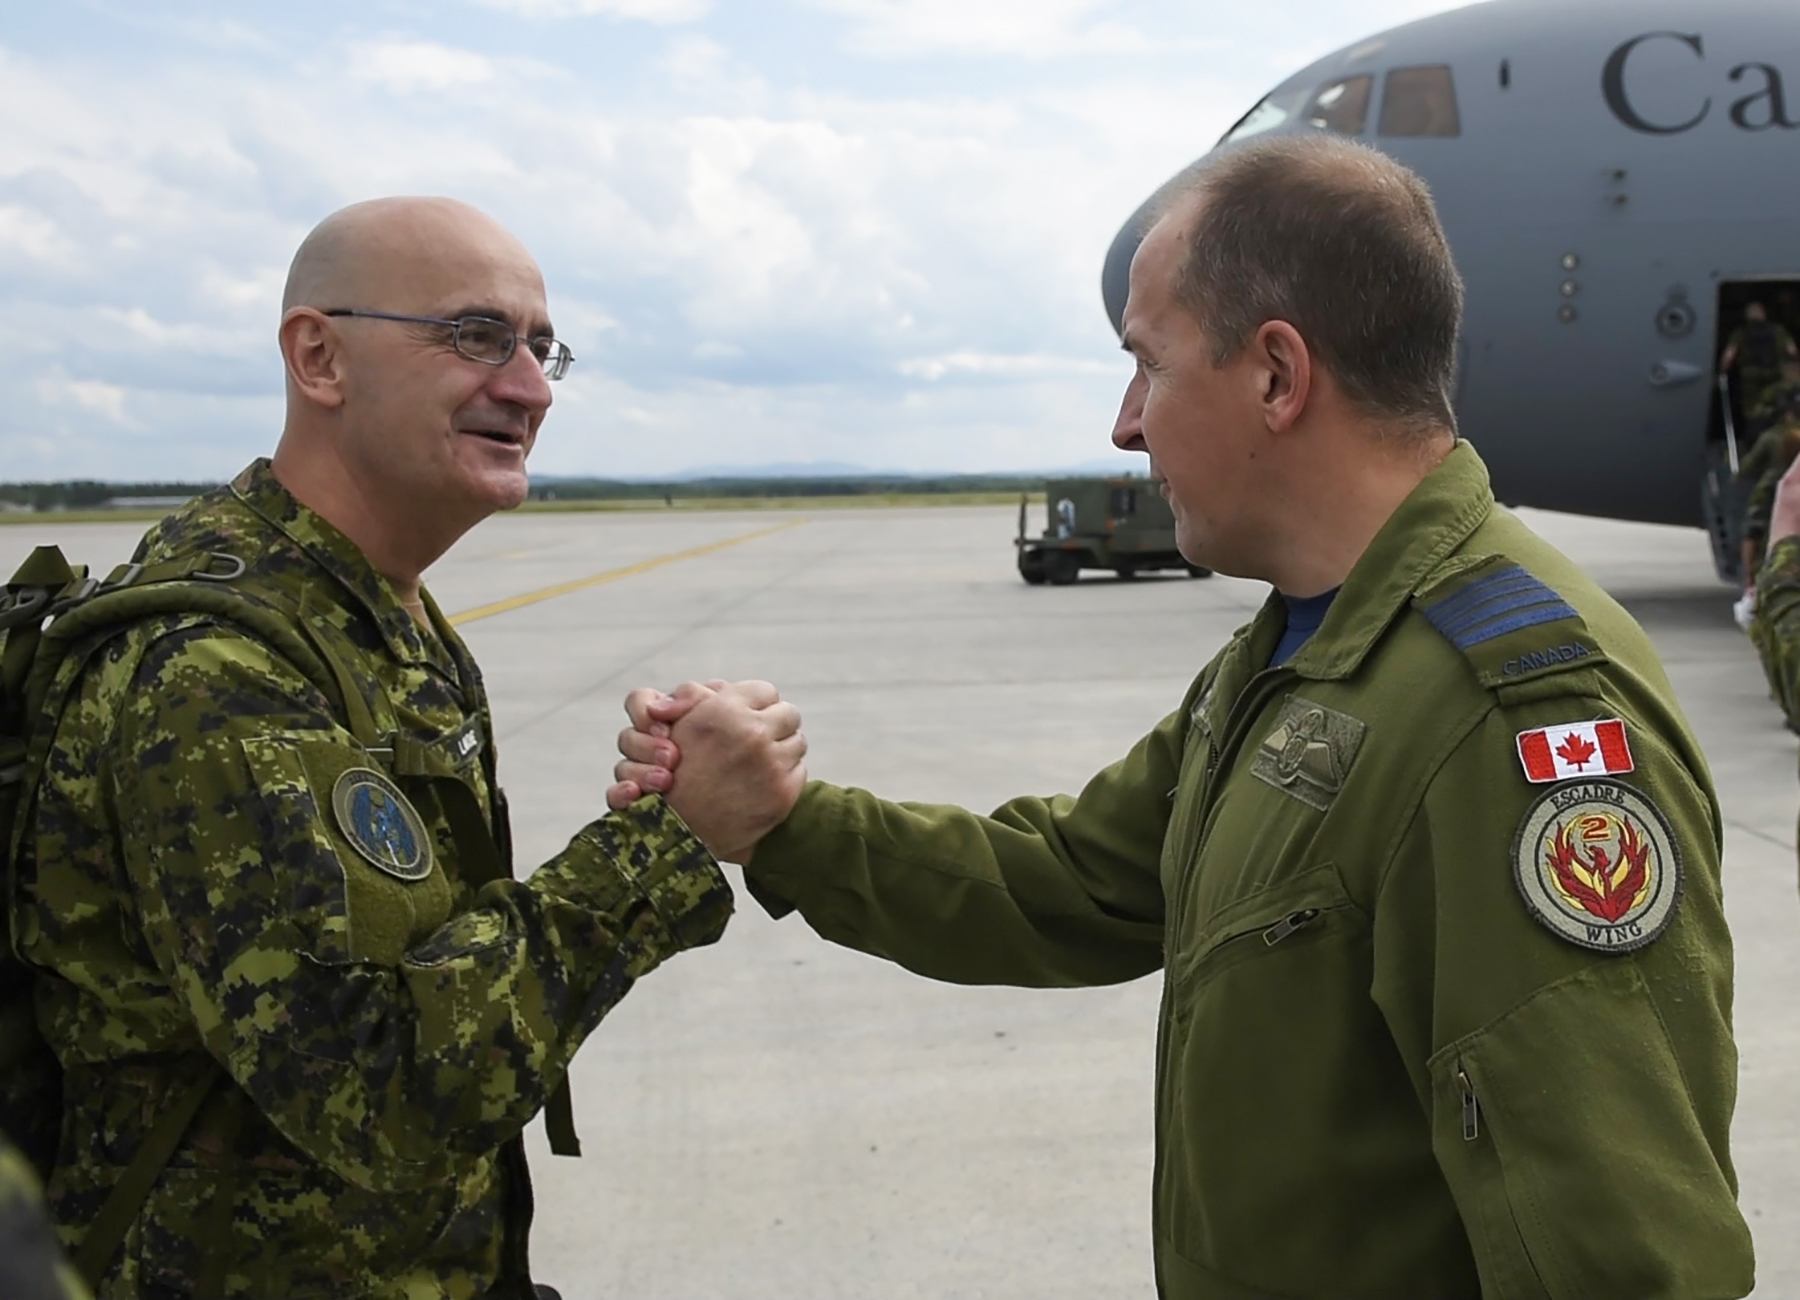 Colonel Luc Guillette, commander of 2 Wing Bagotville, bids farewell to Chief Warrant Officer Jean Lavoie, Airfield Activation Team chief warrant officer, who is departing Canadian Forces Base Bagotville, in Québec, on August 11, 2017, for his deployment to Romania on Operation Reassurance. PHOTO: Master Corporal Louis Brunet, BN25-2017-0484-015